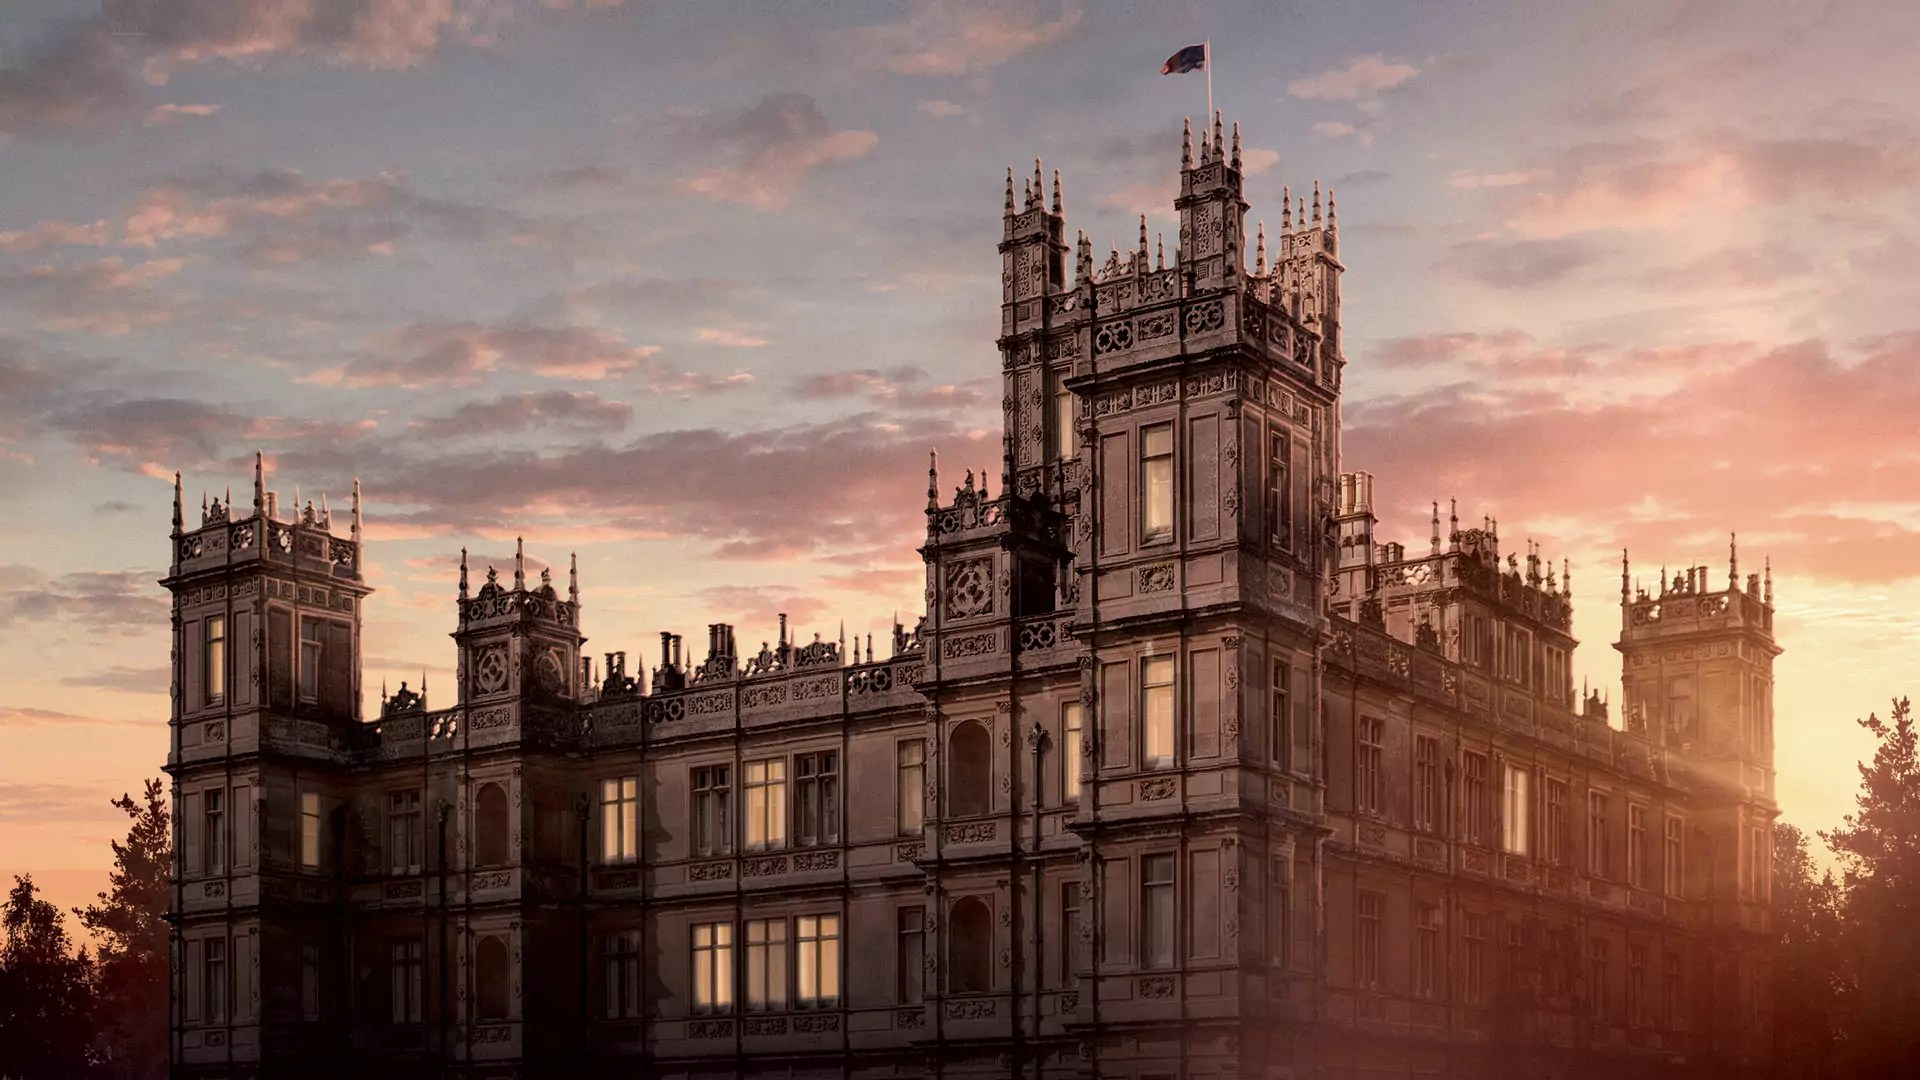 The Downton Abbey Castle at sunset.